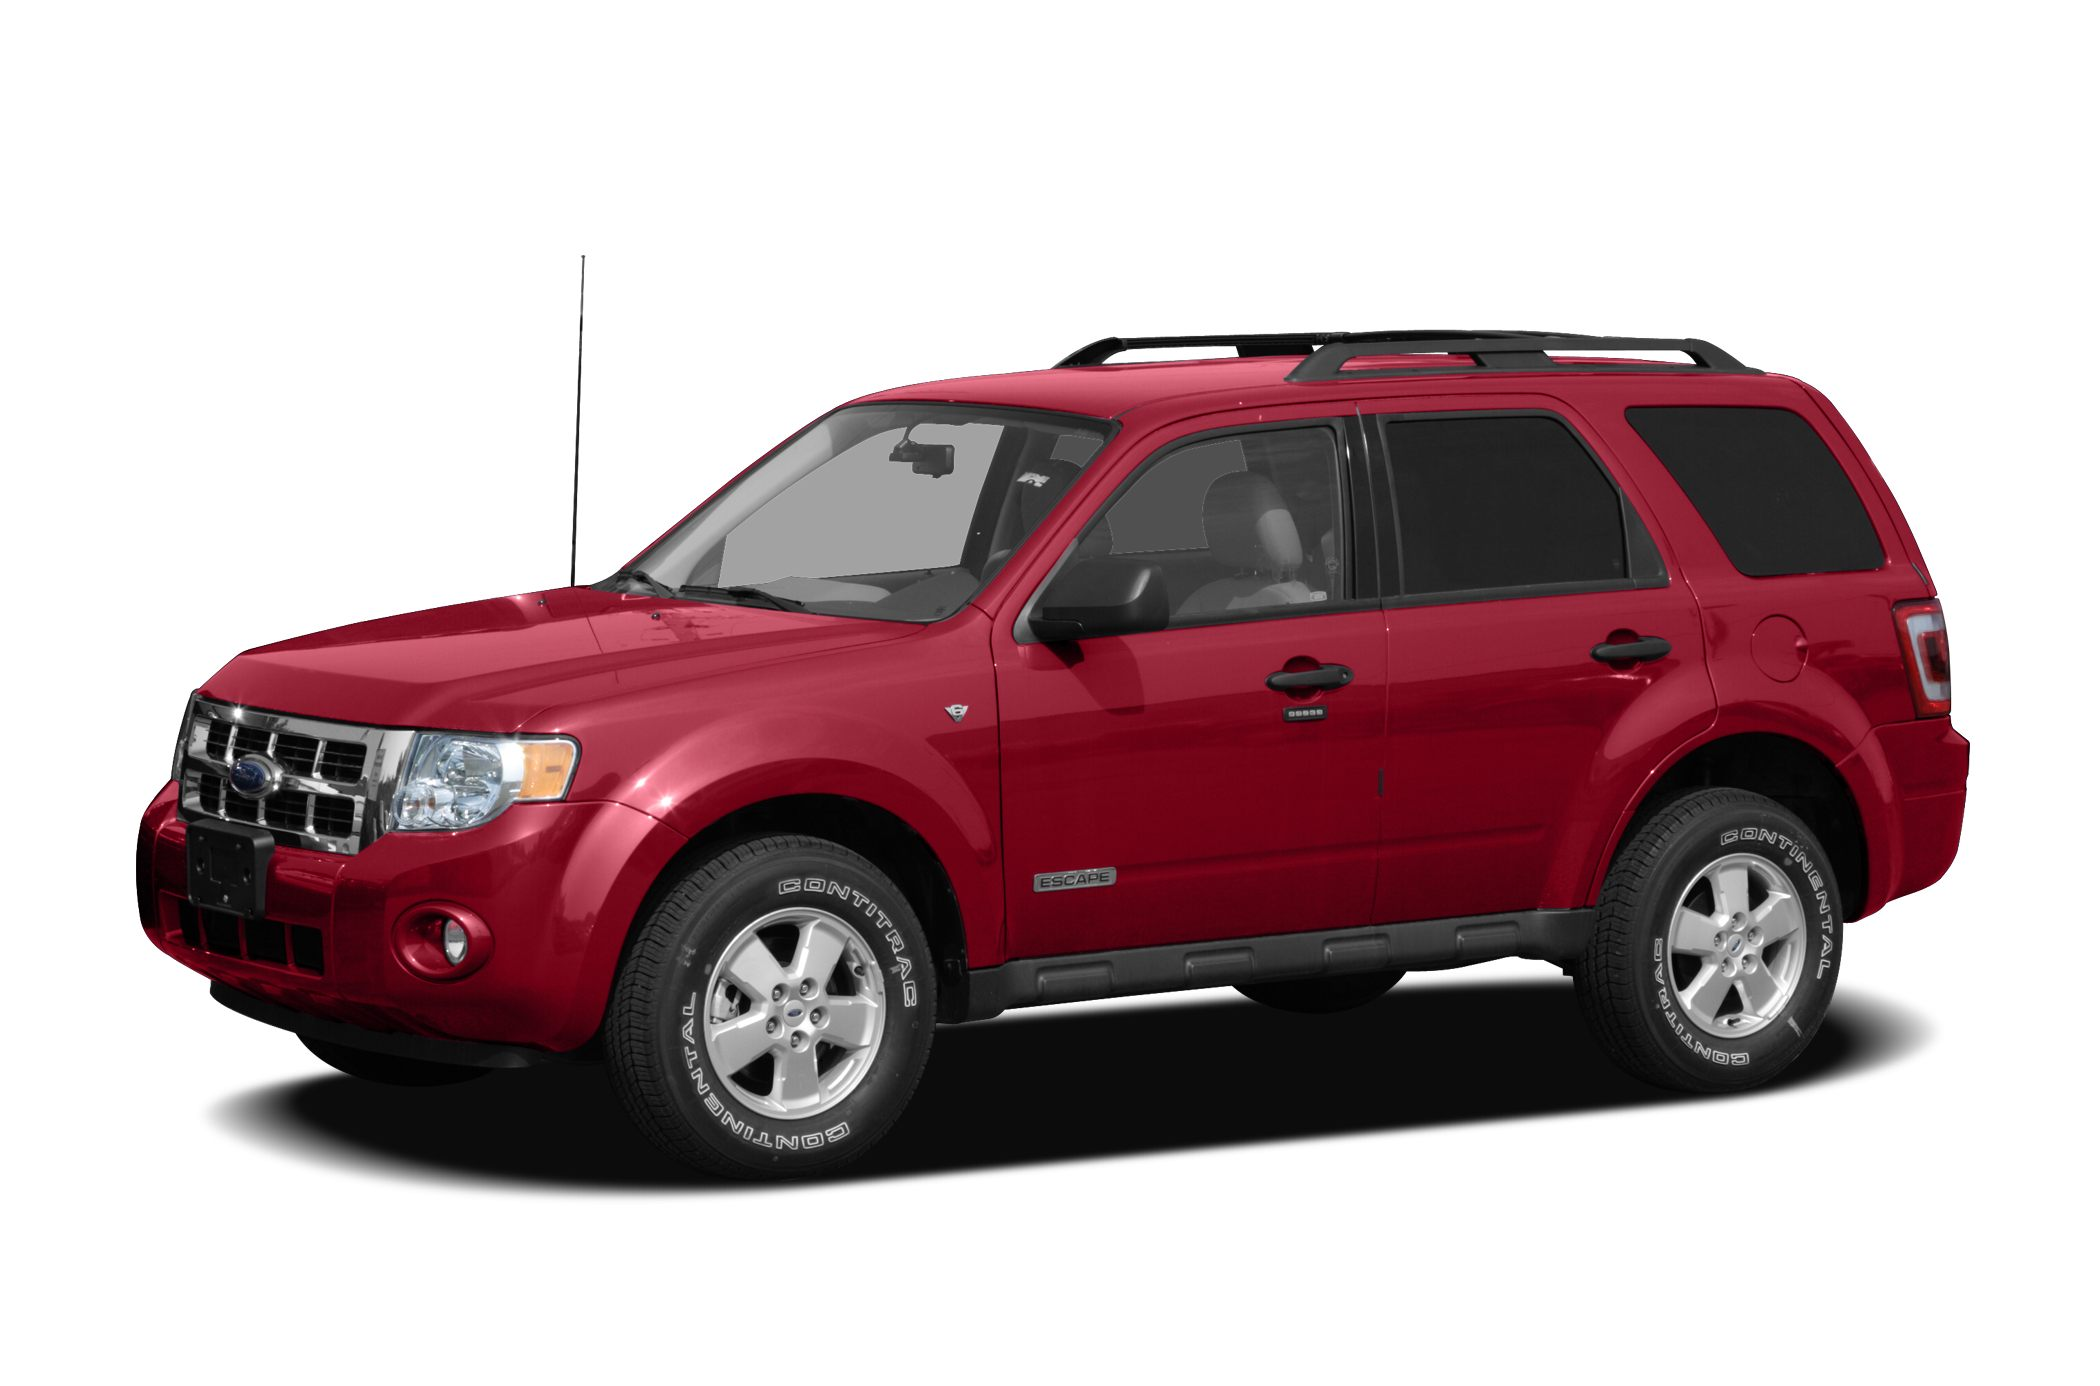 2008 Ford Escape XLT SUV for sale in Ebensburg for $7,500 with 122,154 miles